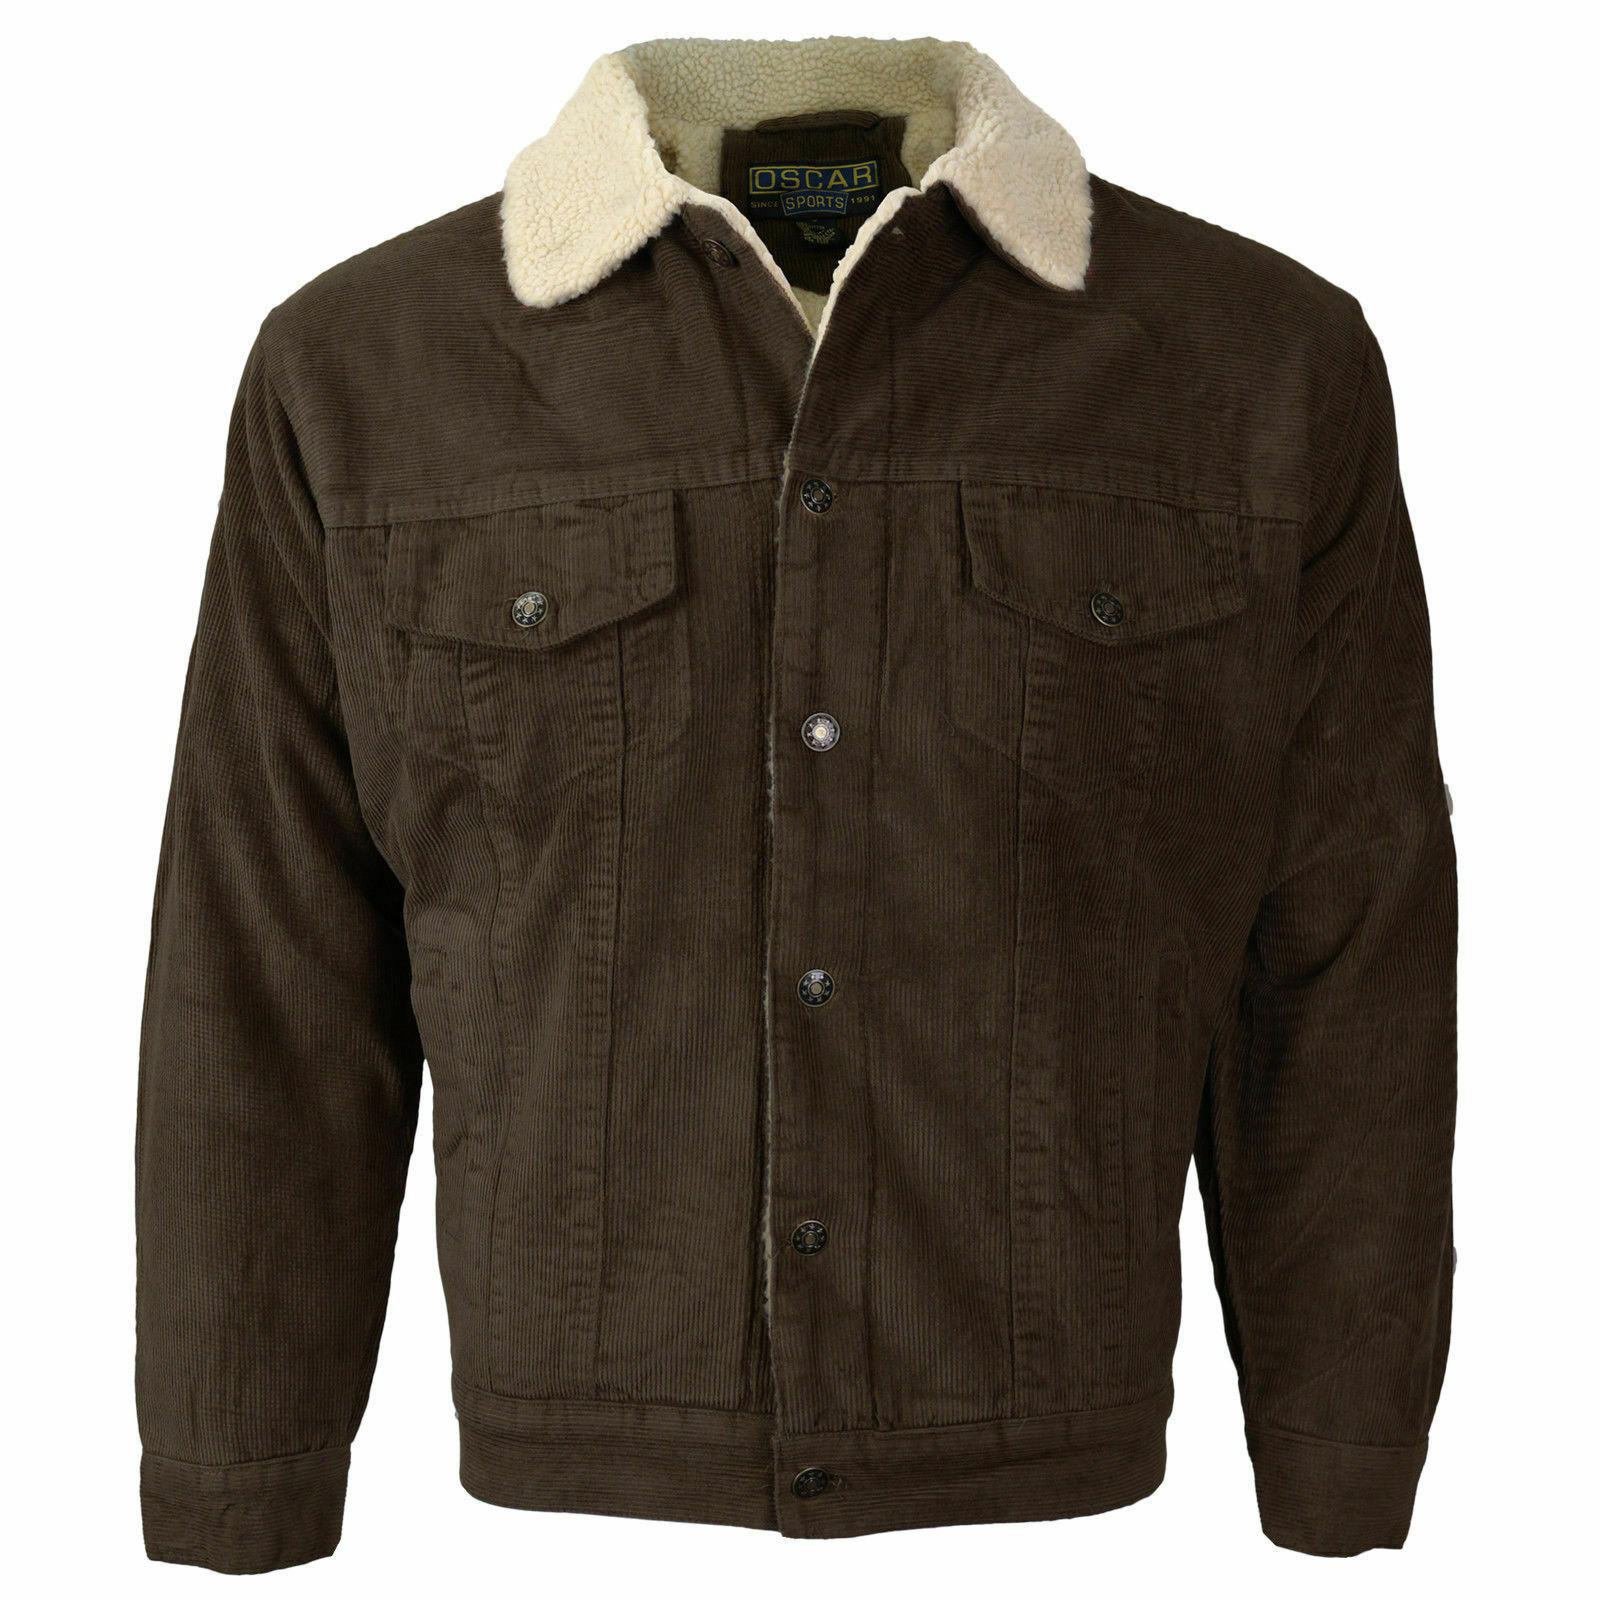 Men's Classic Button Up Fur Lined Corduroy Sherpa Brown Trucker Jacket